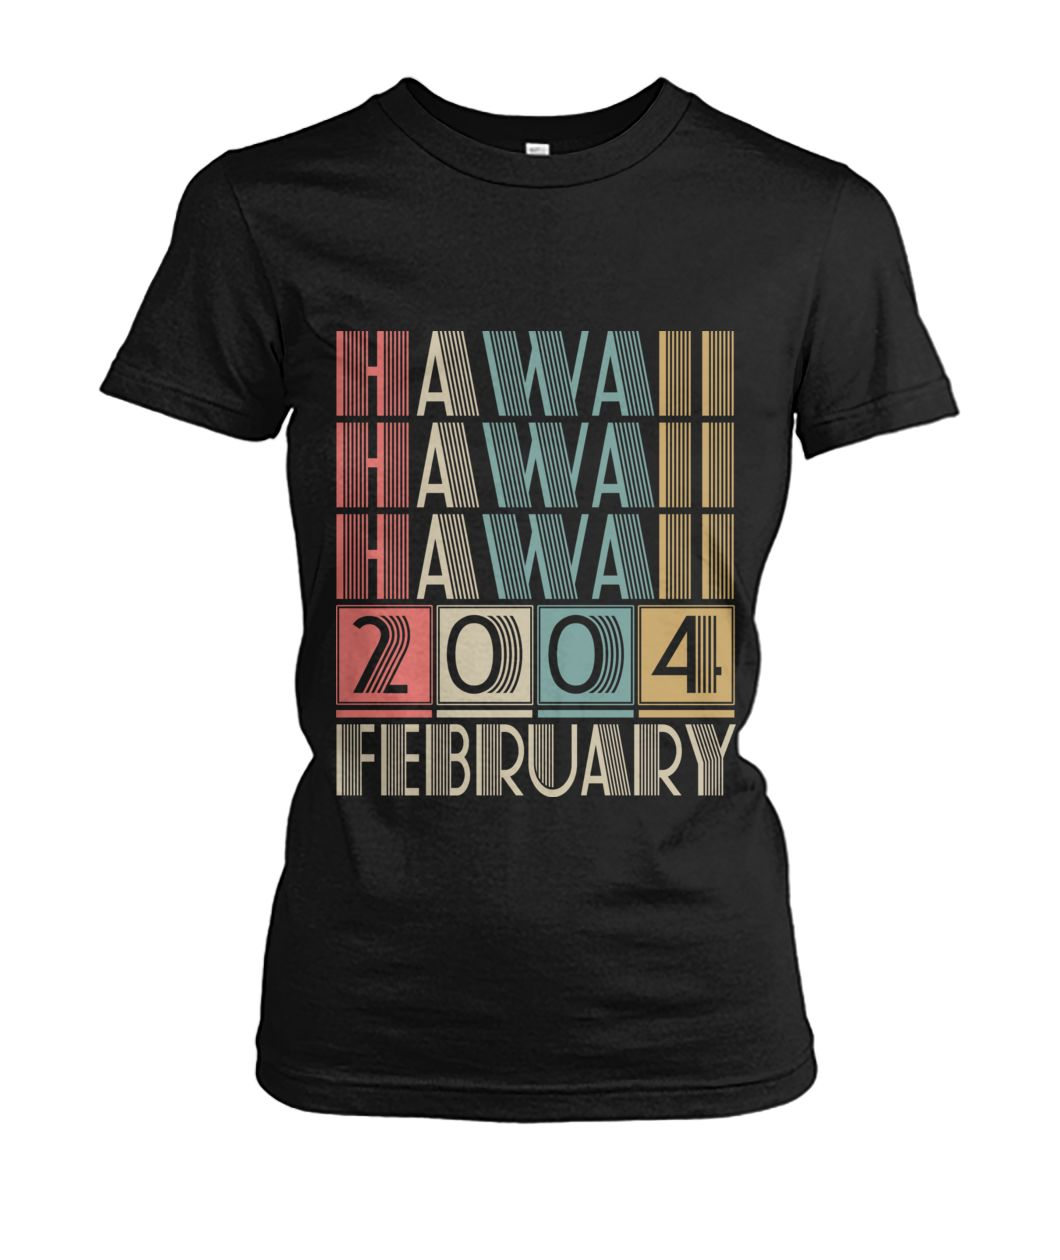 Born in Hawaii in February 2004 t shirt-Short Sleeves - TEEHOT.COM